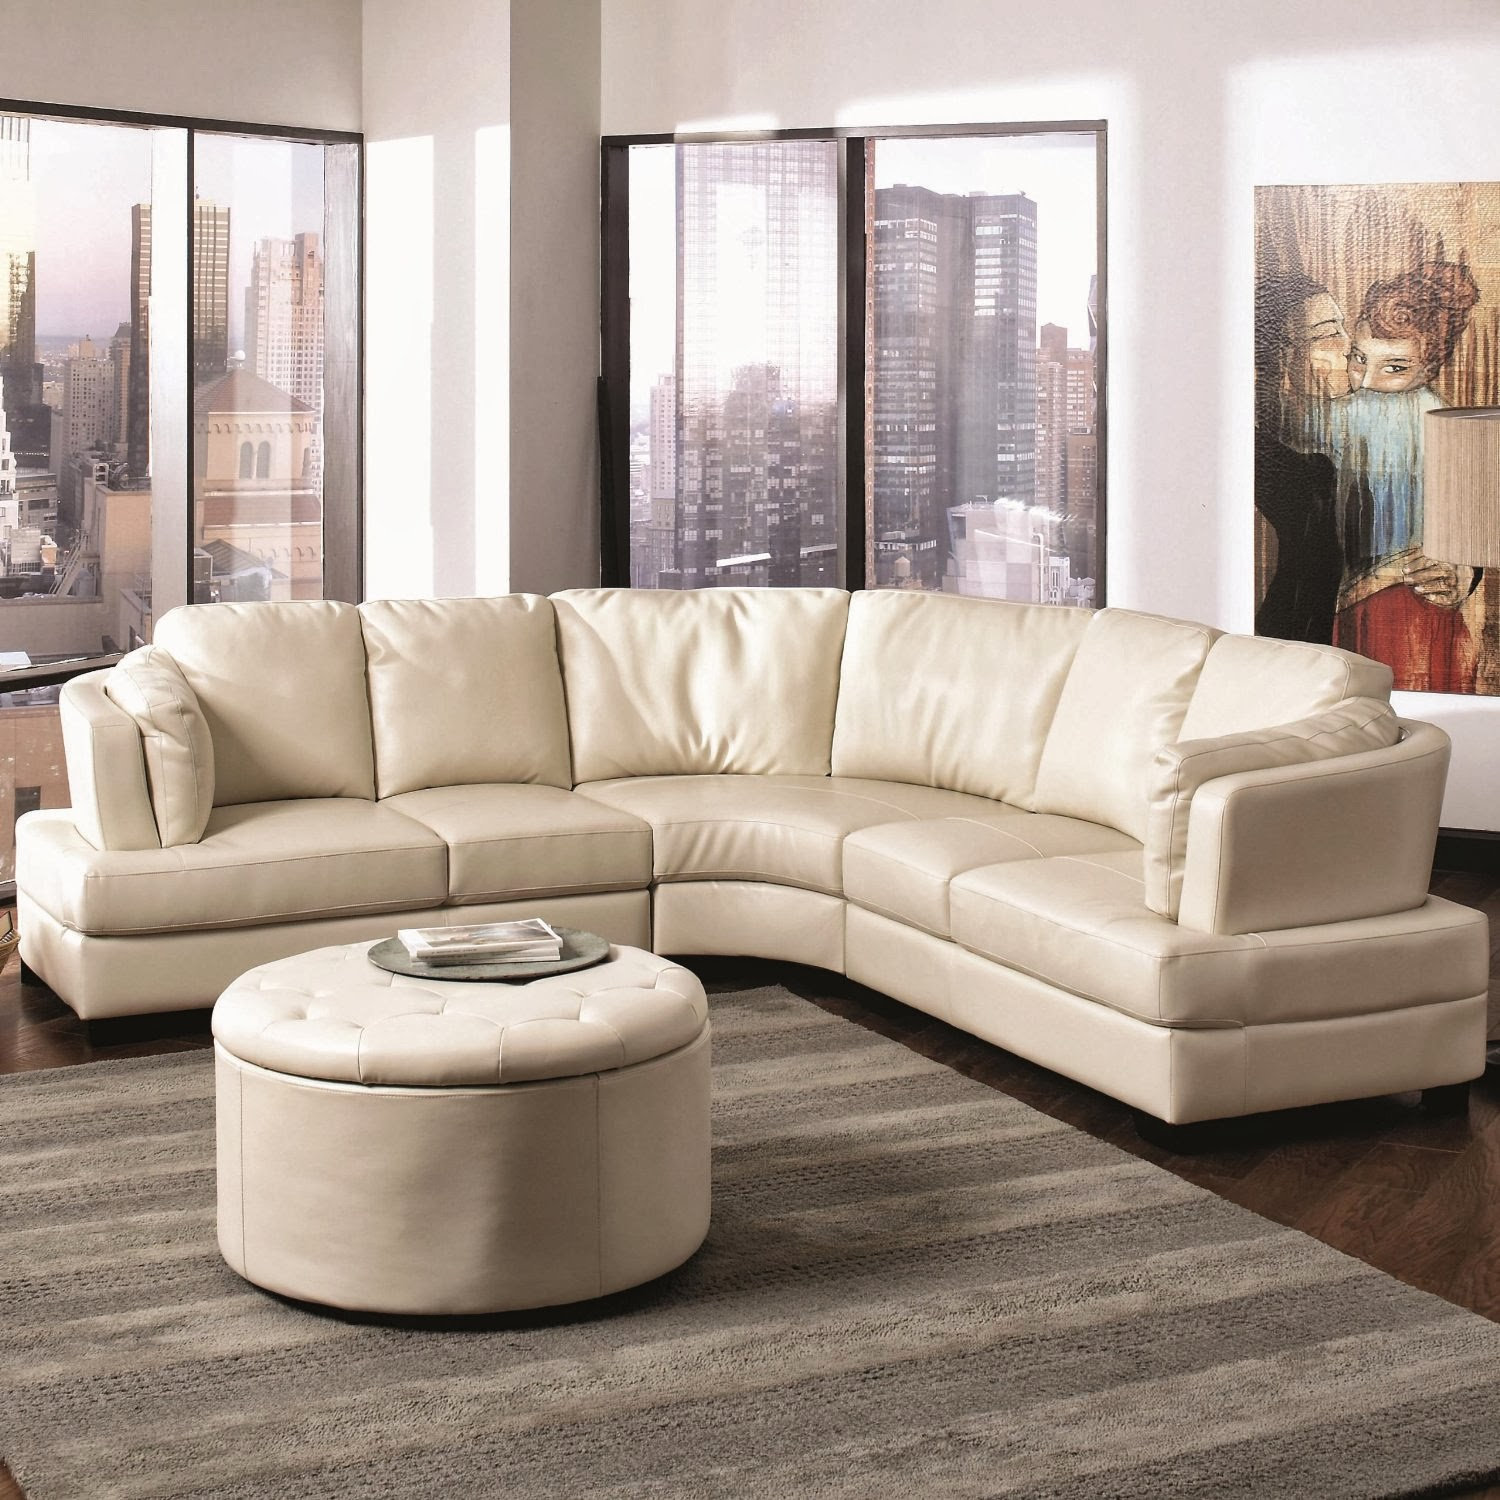 Curved Sofa Sectional Leather: Buy Curved Sofa Online: September 2013